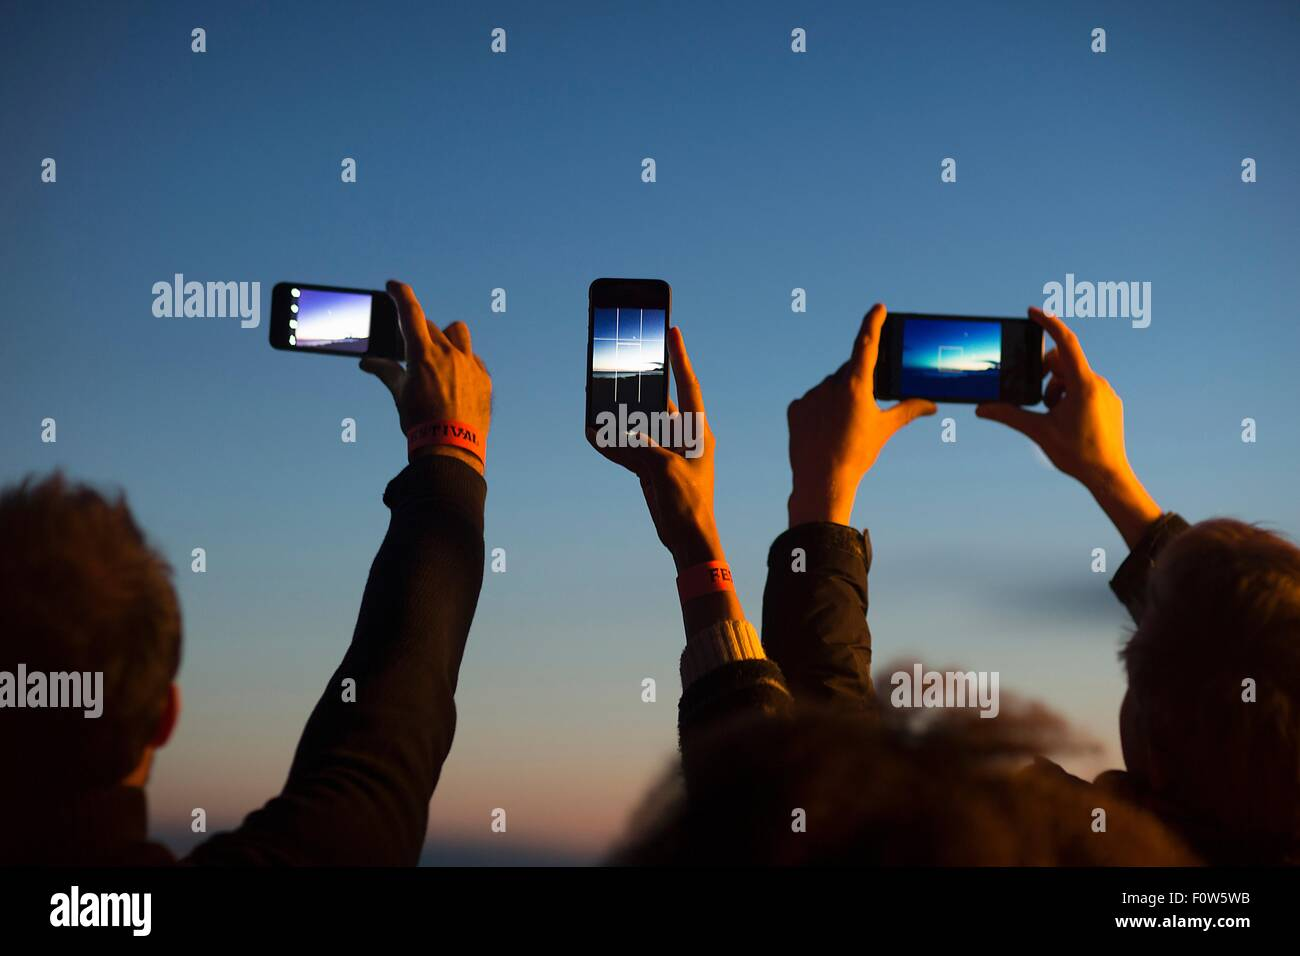 Friends taking photograph with smartphone at dusk - Stock Image